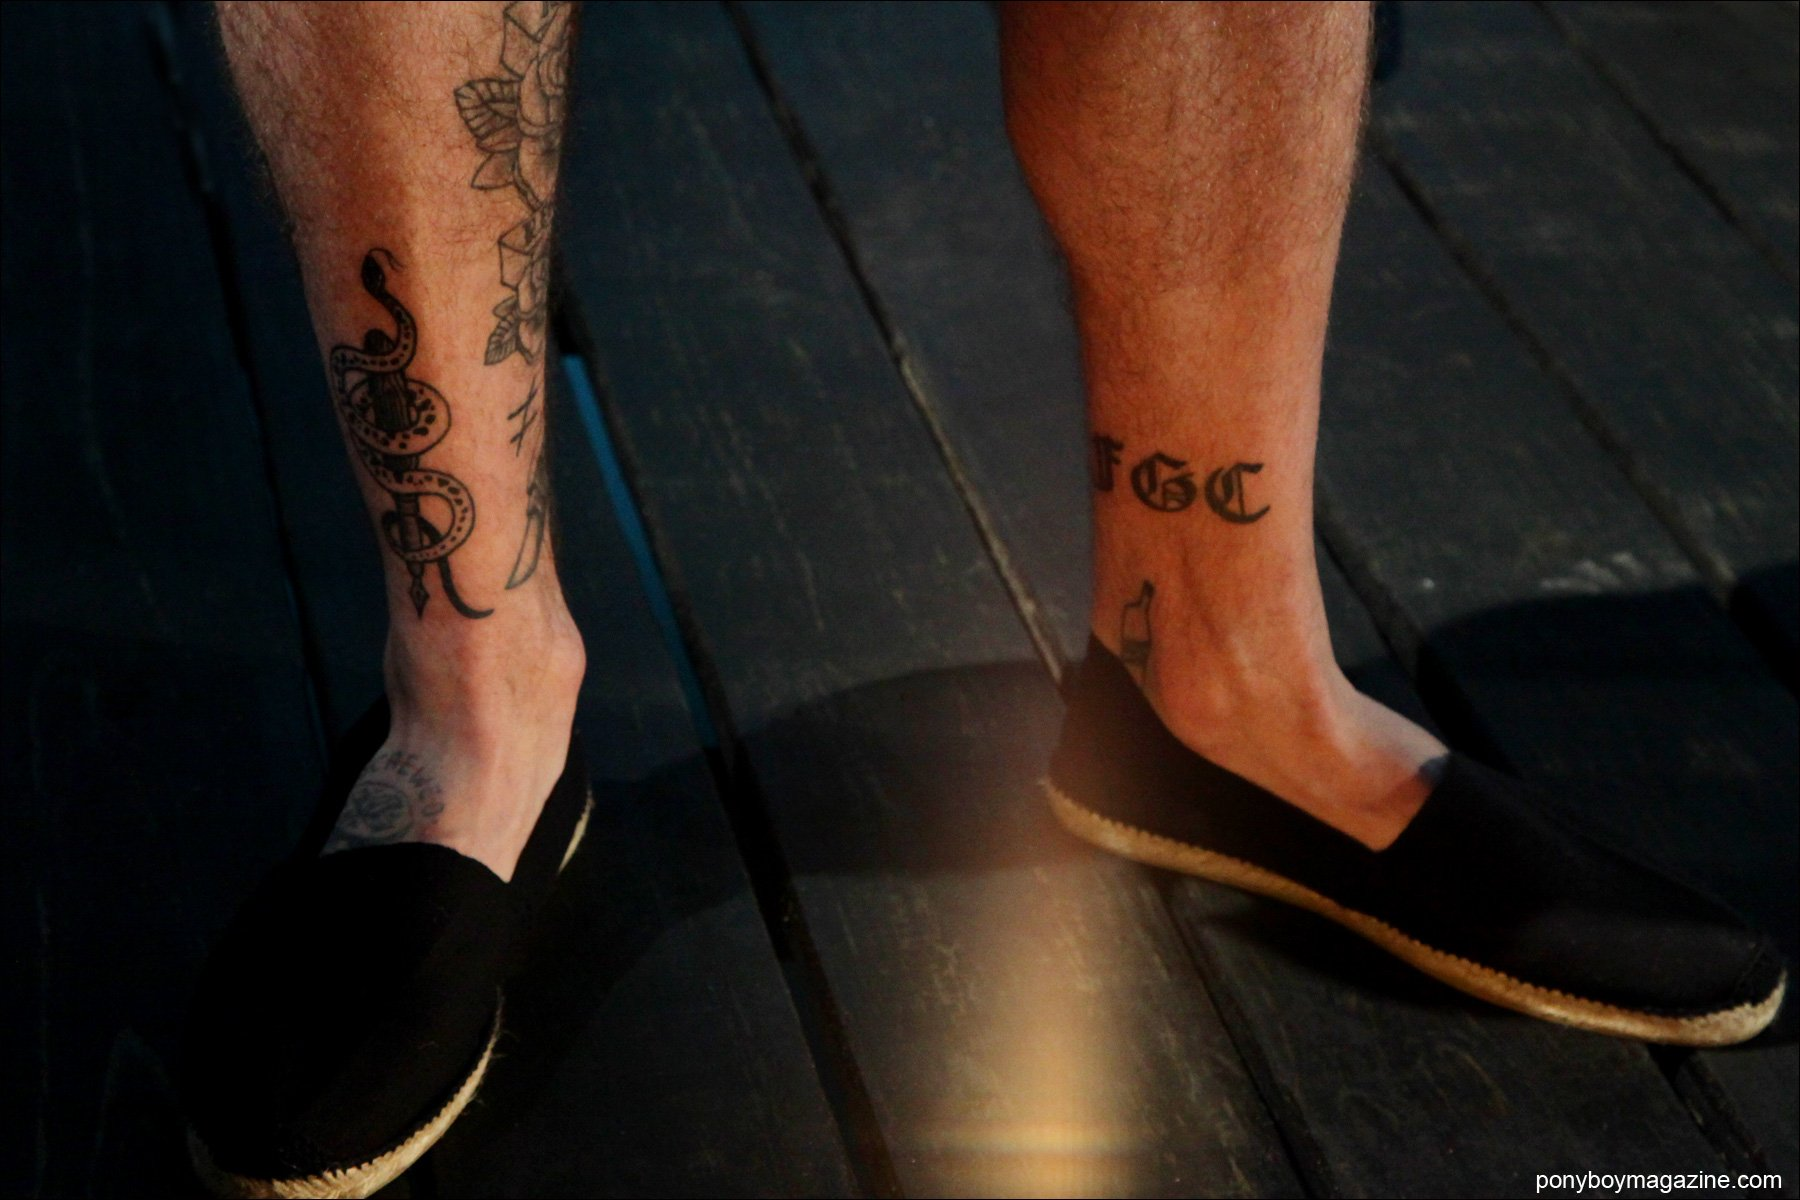 A male models tattooed legs in espadrilles, at the Rochambeau S/S15 presentation at Milk Studios NY. Photo by Alexander Thompson for Ponyboy Magazine.